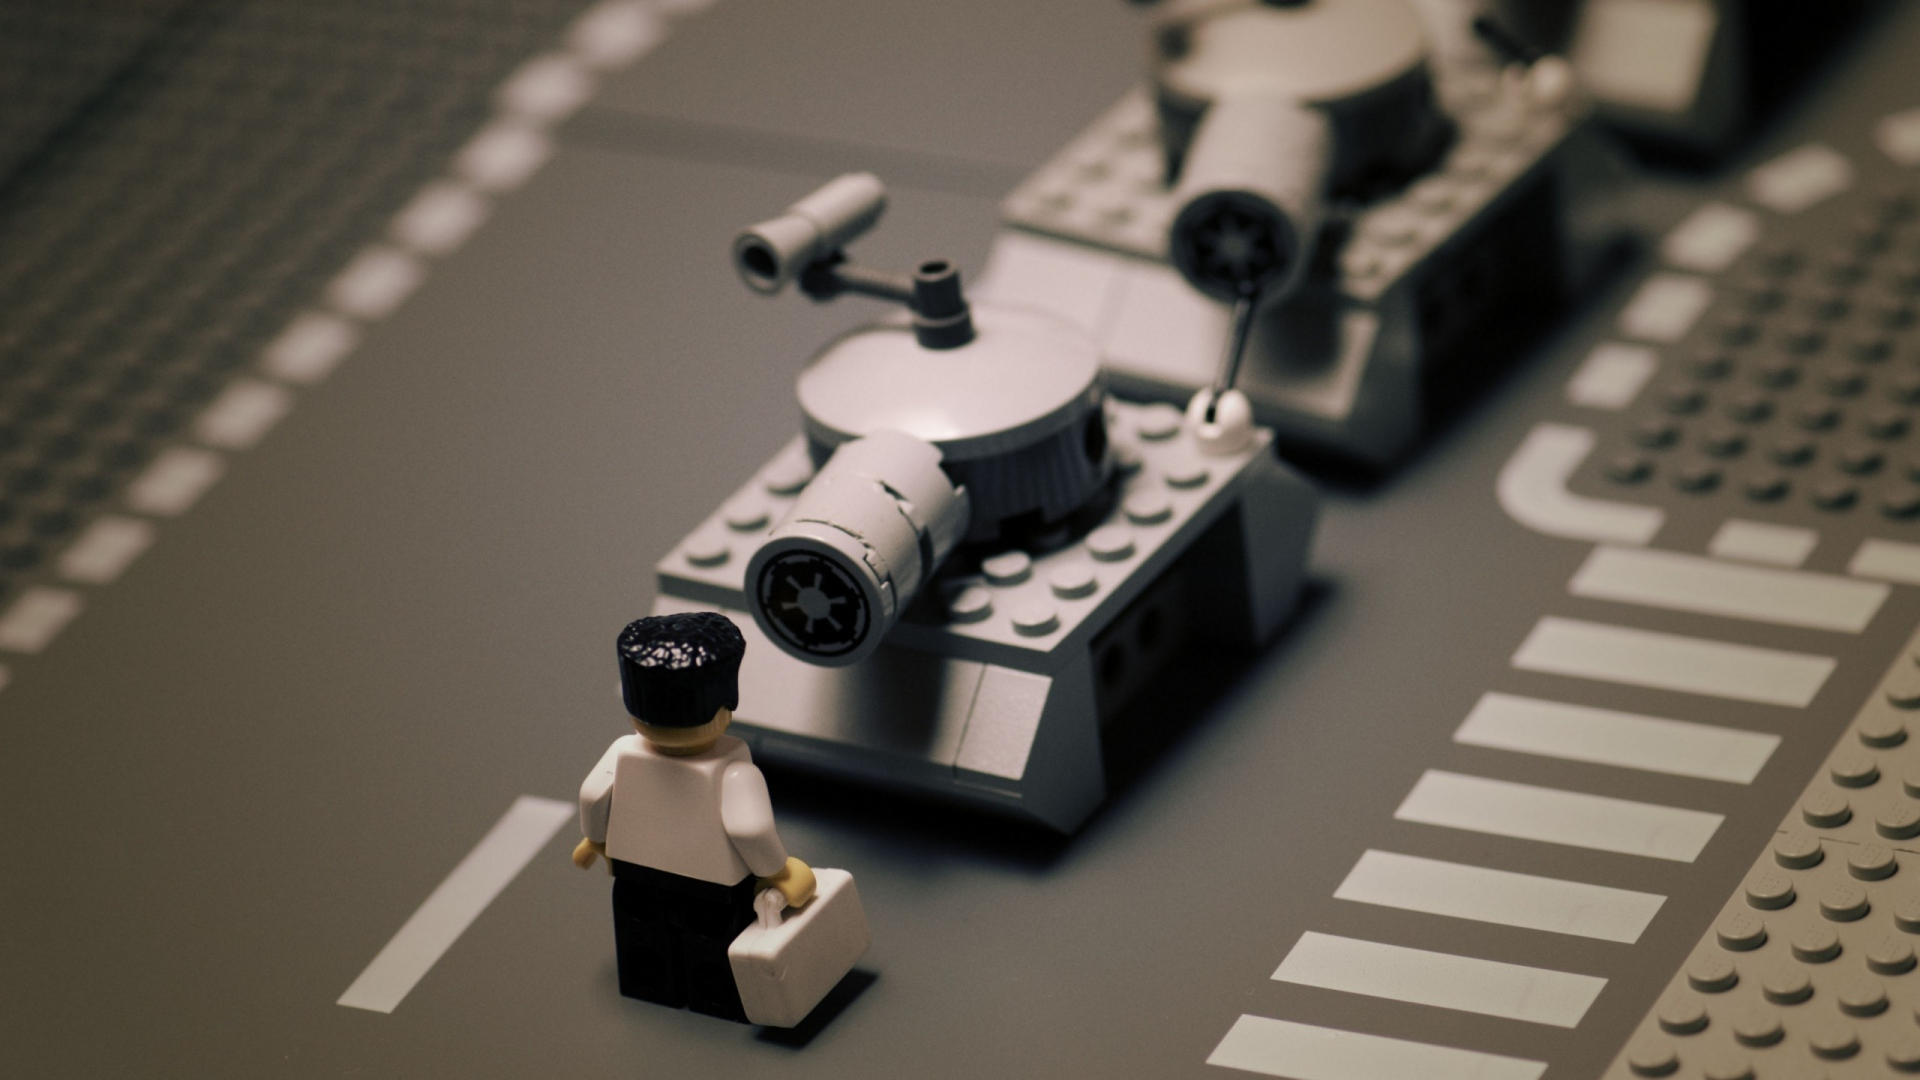 Download wallpaper 1920x1080 road lego tank tanks black white road lego tank voltagebd Image collections